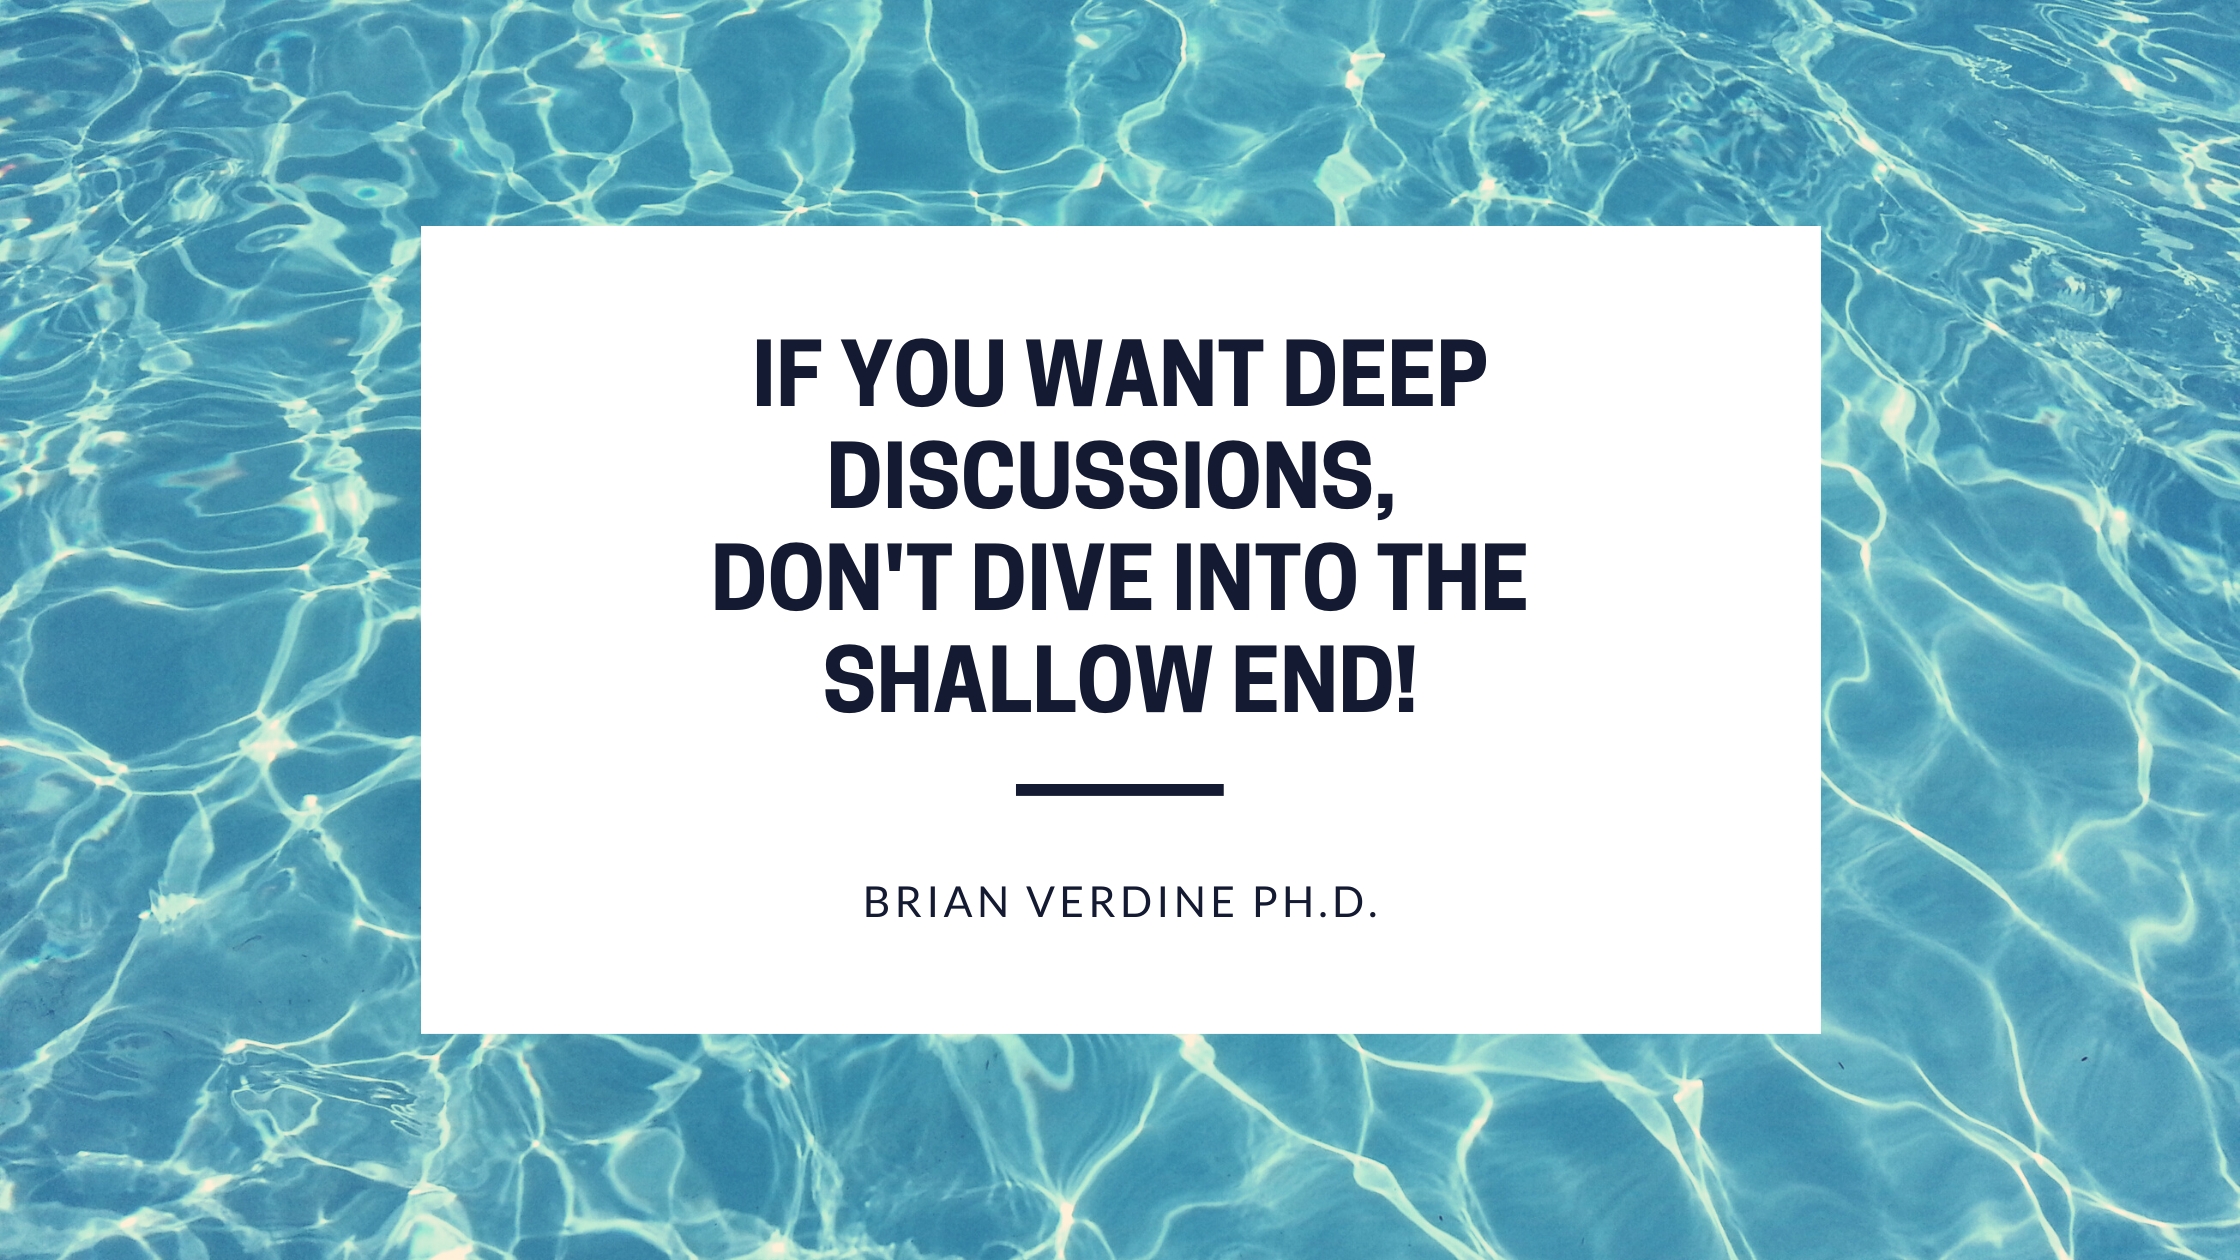 If you want deep discussions don't dive into the shallow end! - Brian Verdine PH.D.